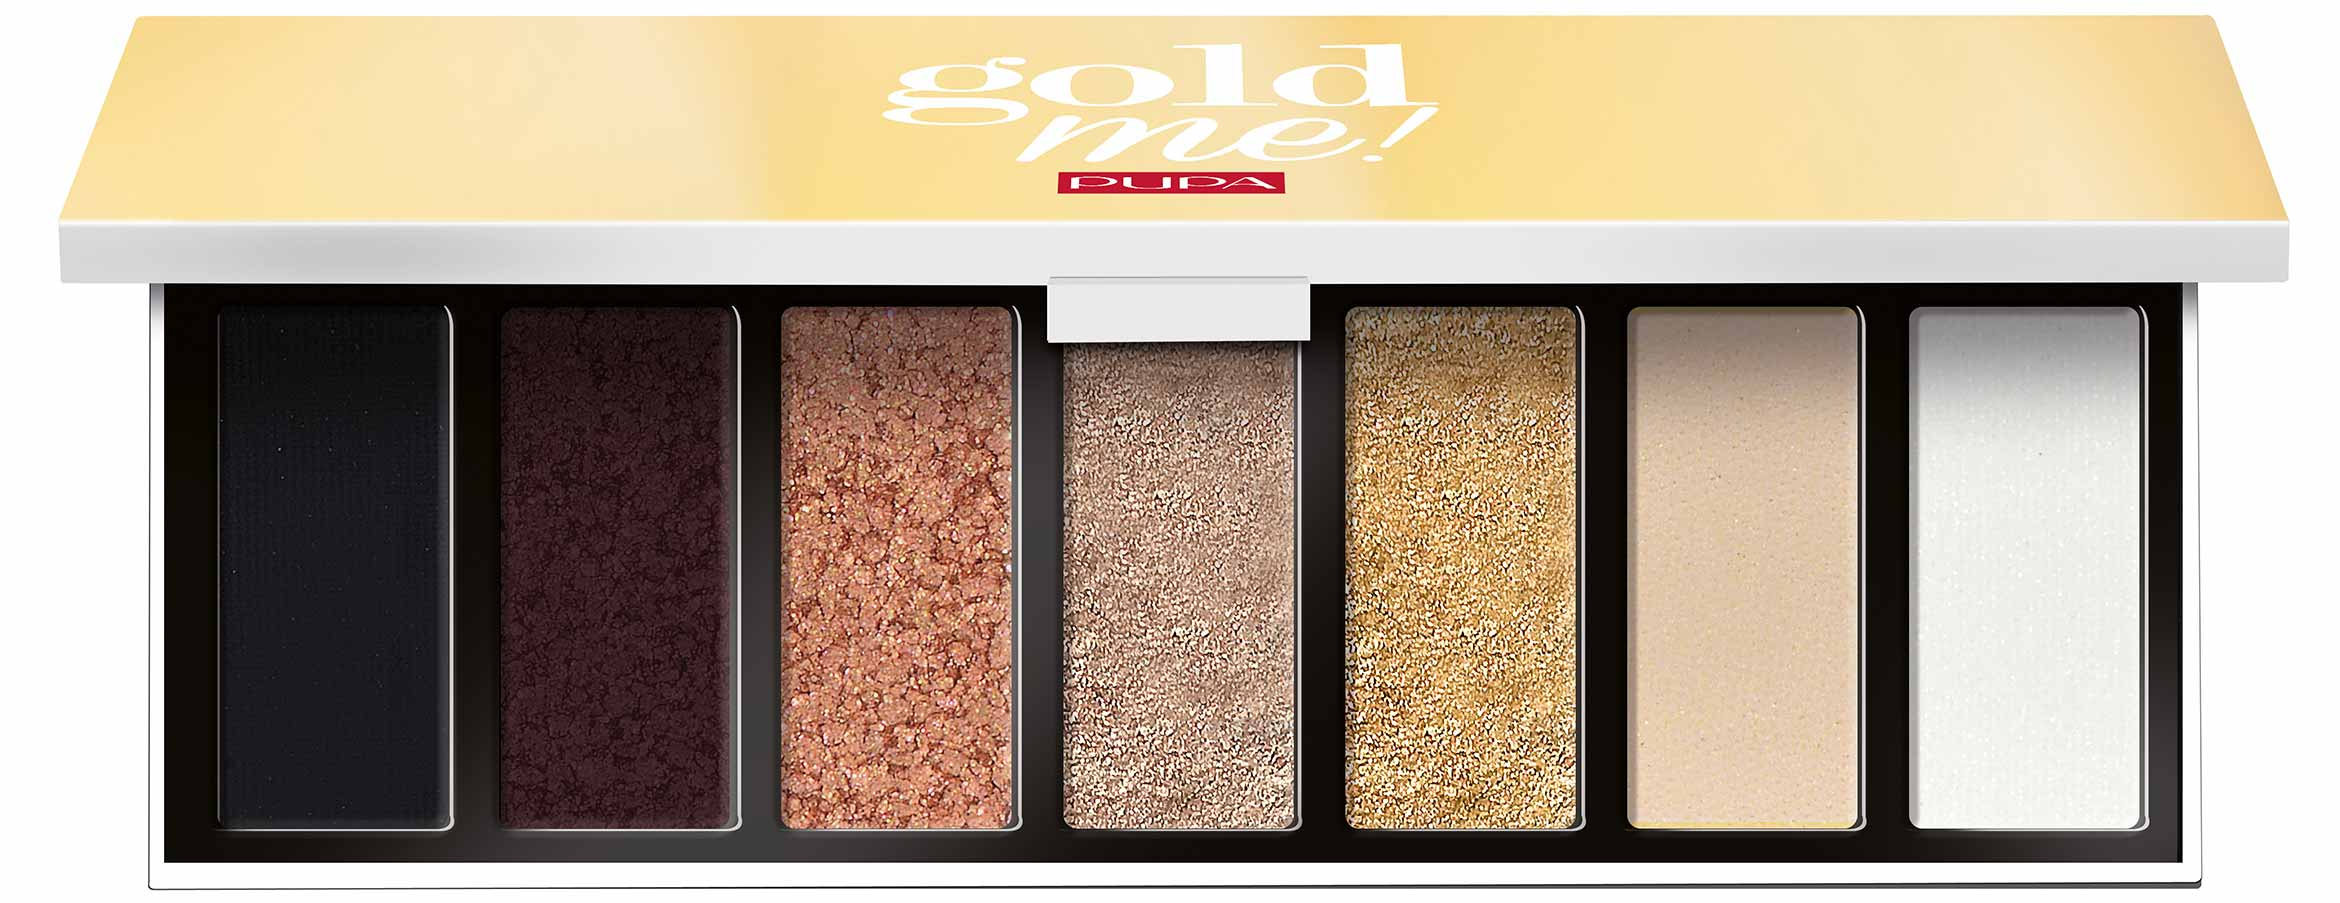 pupa gold me eyeshadow palette - PREVIEW │ PUPA GOLD ME CHRISTMAS COLLECTION